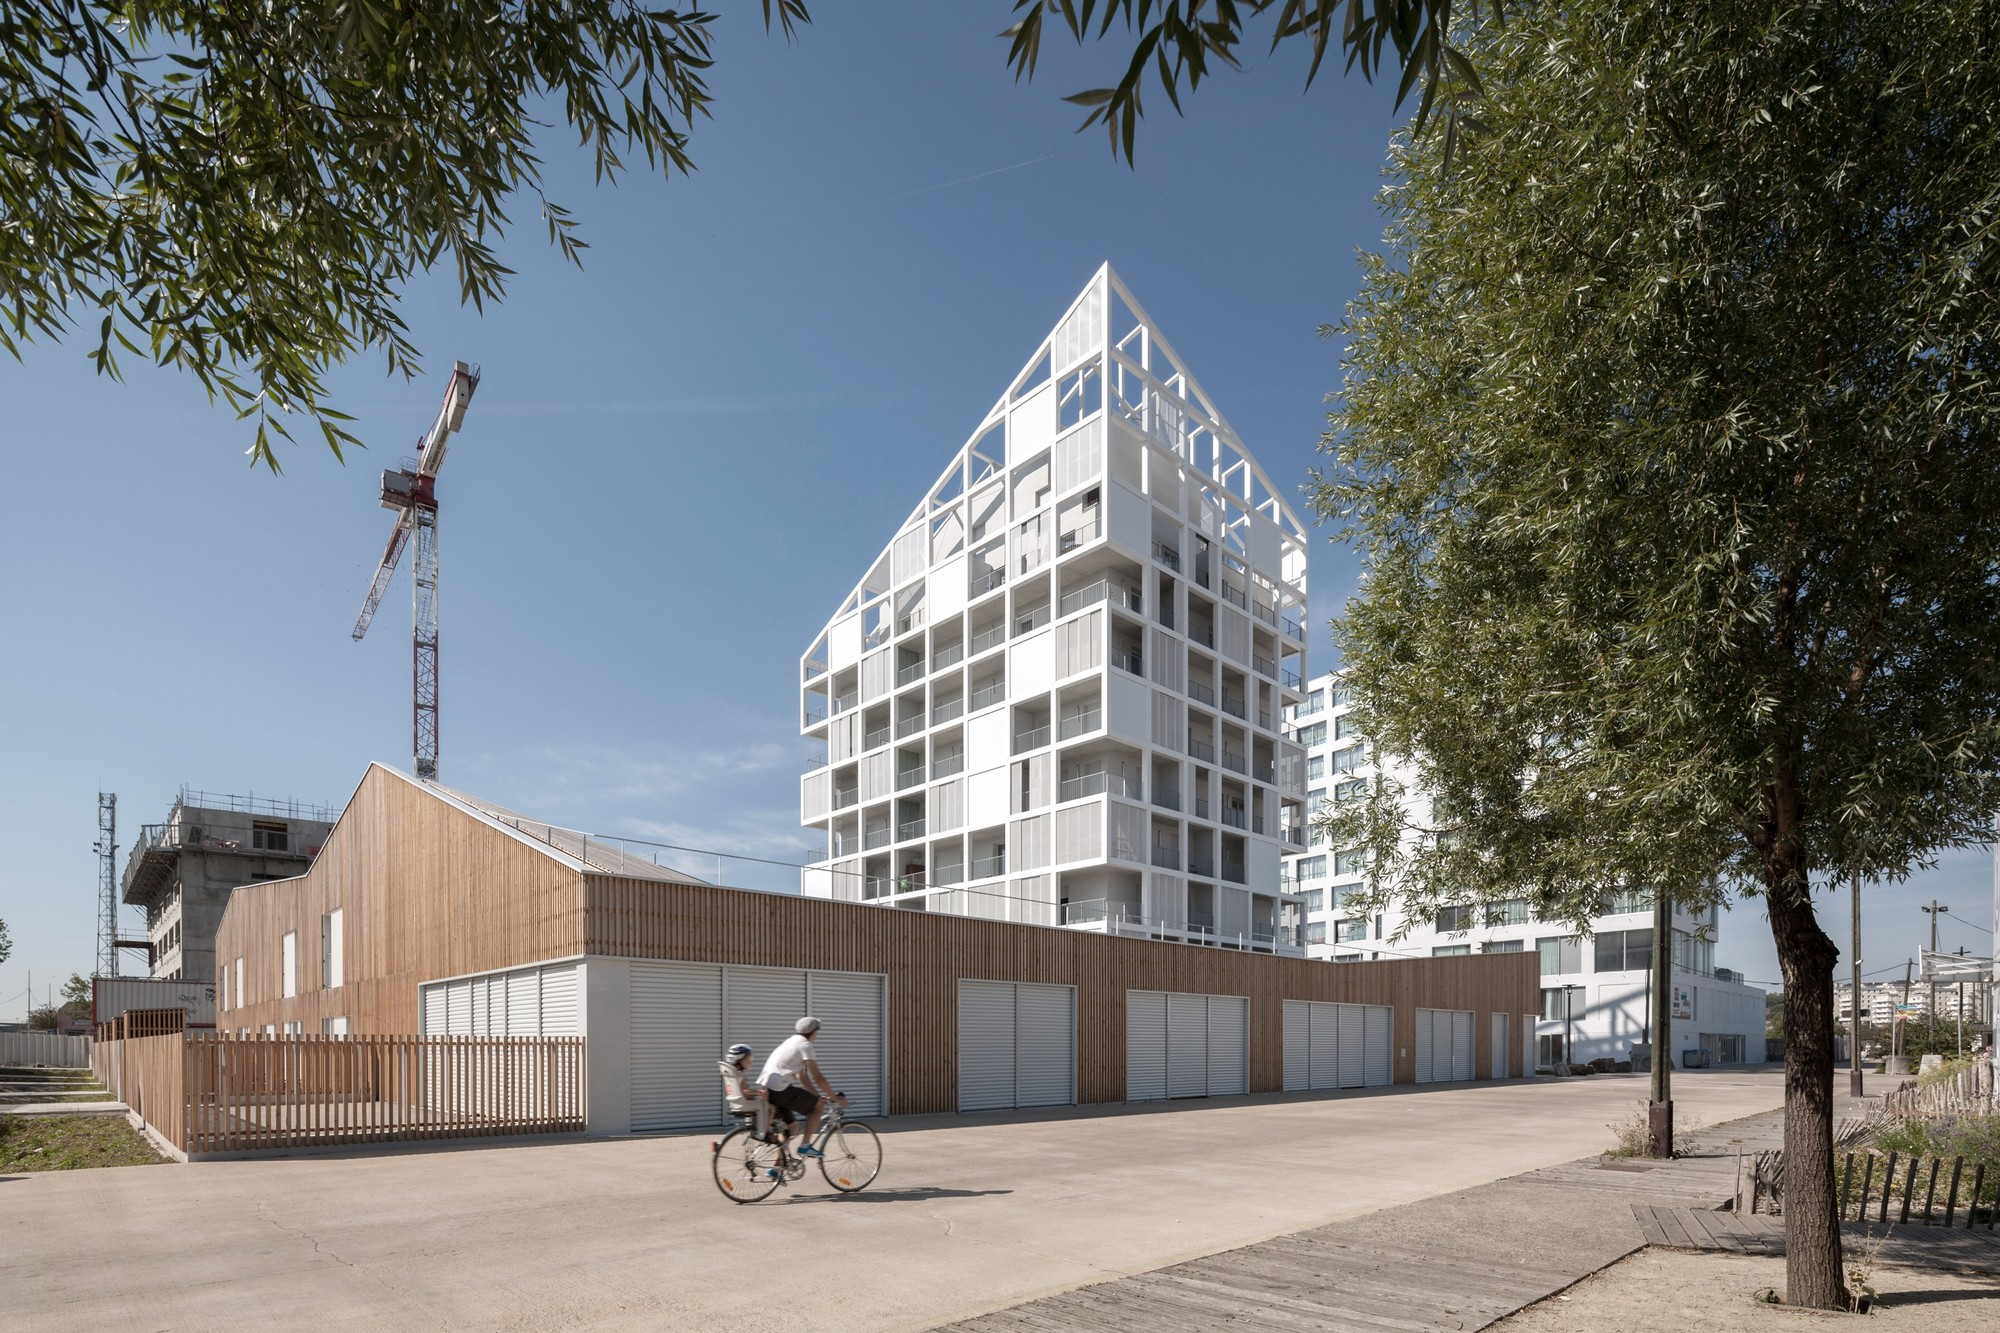 Gallery of 30 social housing units in nantes antonini for Architecture nantes